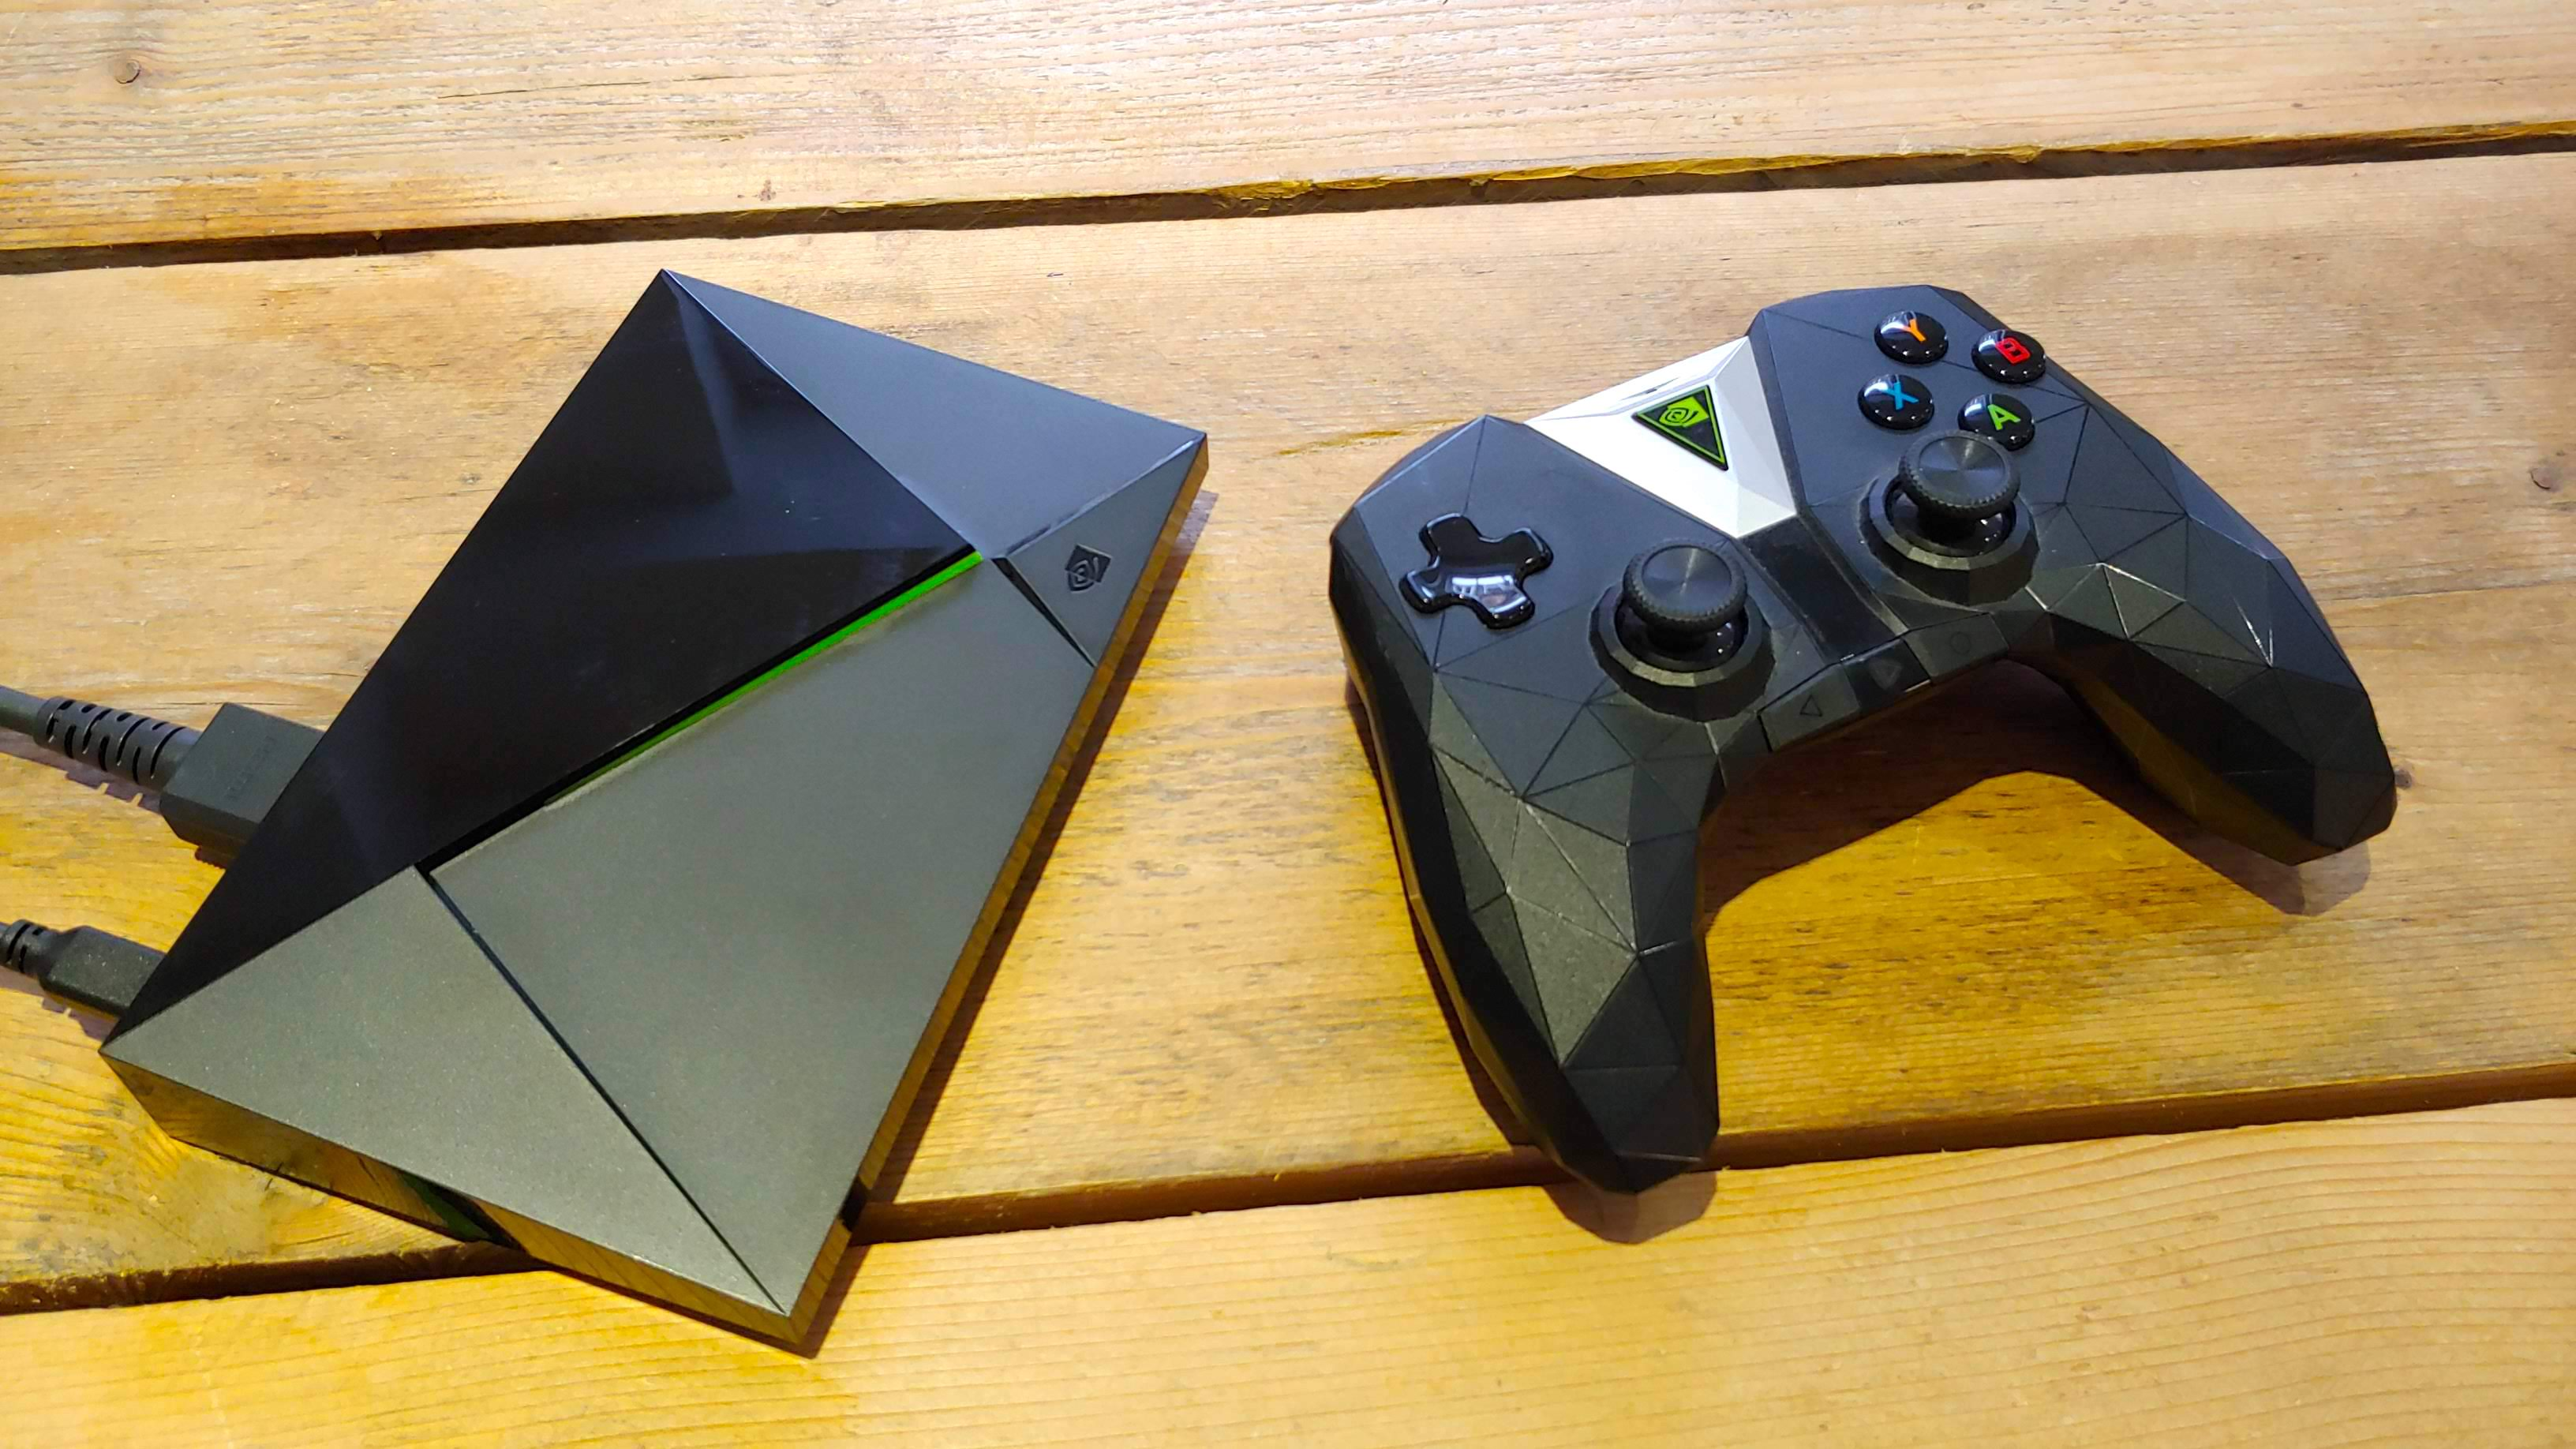 The excellent Nvidia Shield controller, now sold separately